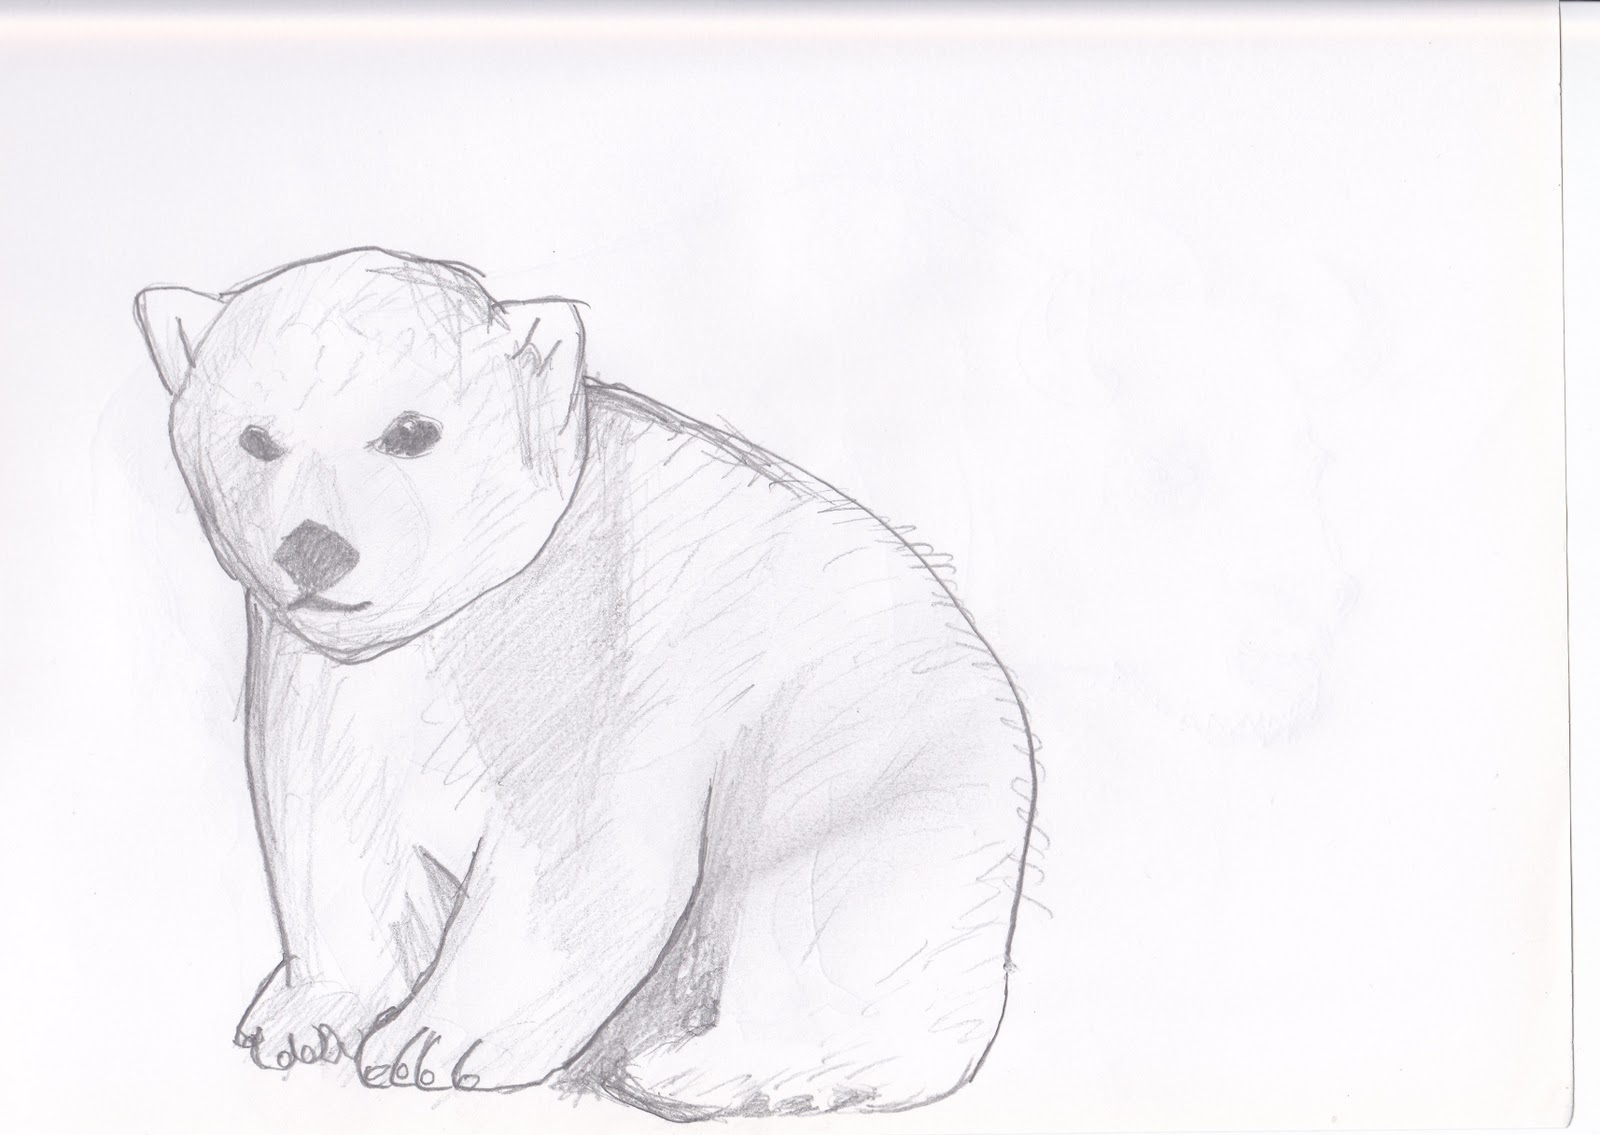 THE O.S. BLOG: Paper Zoo - Animal Sketches - WIP